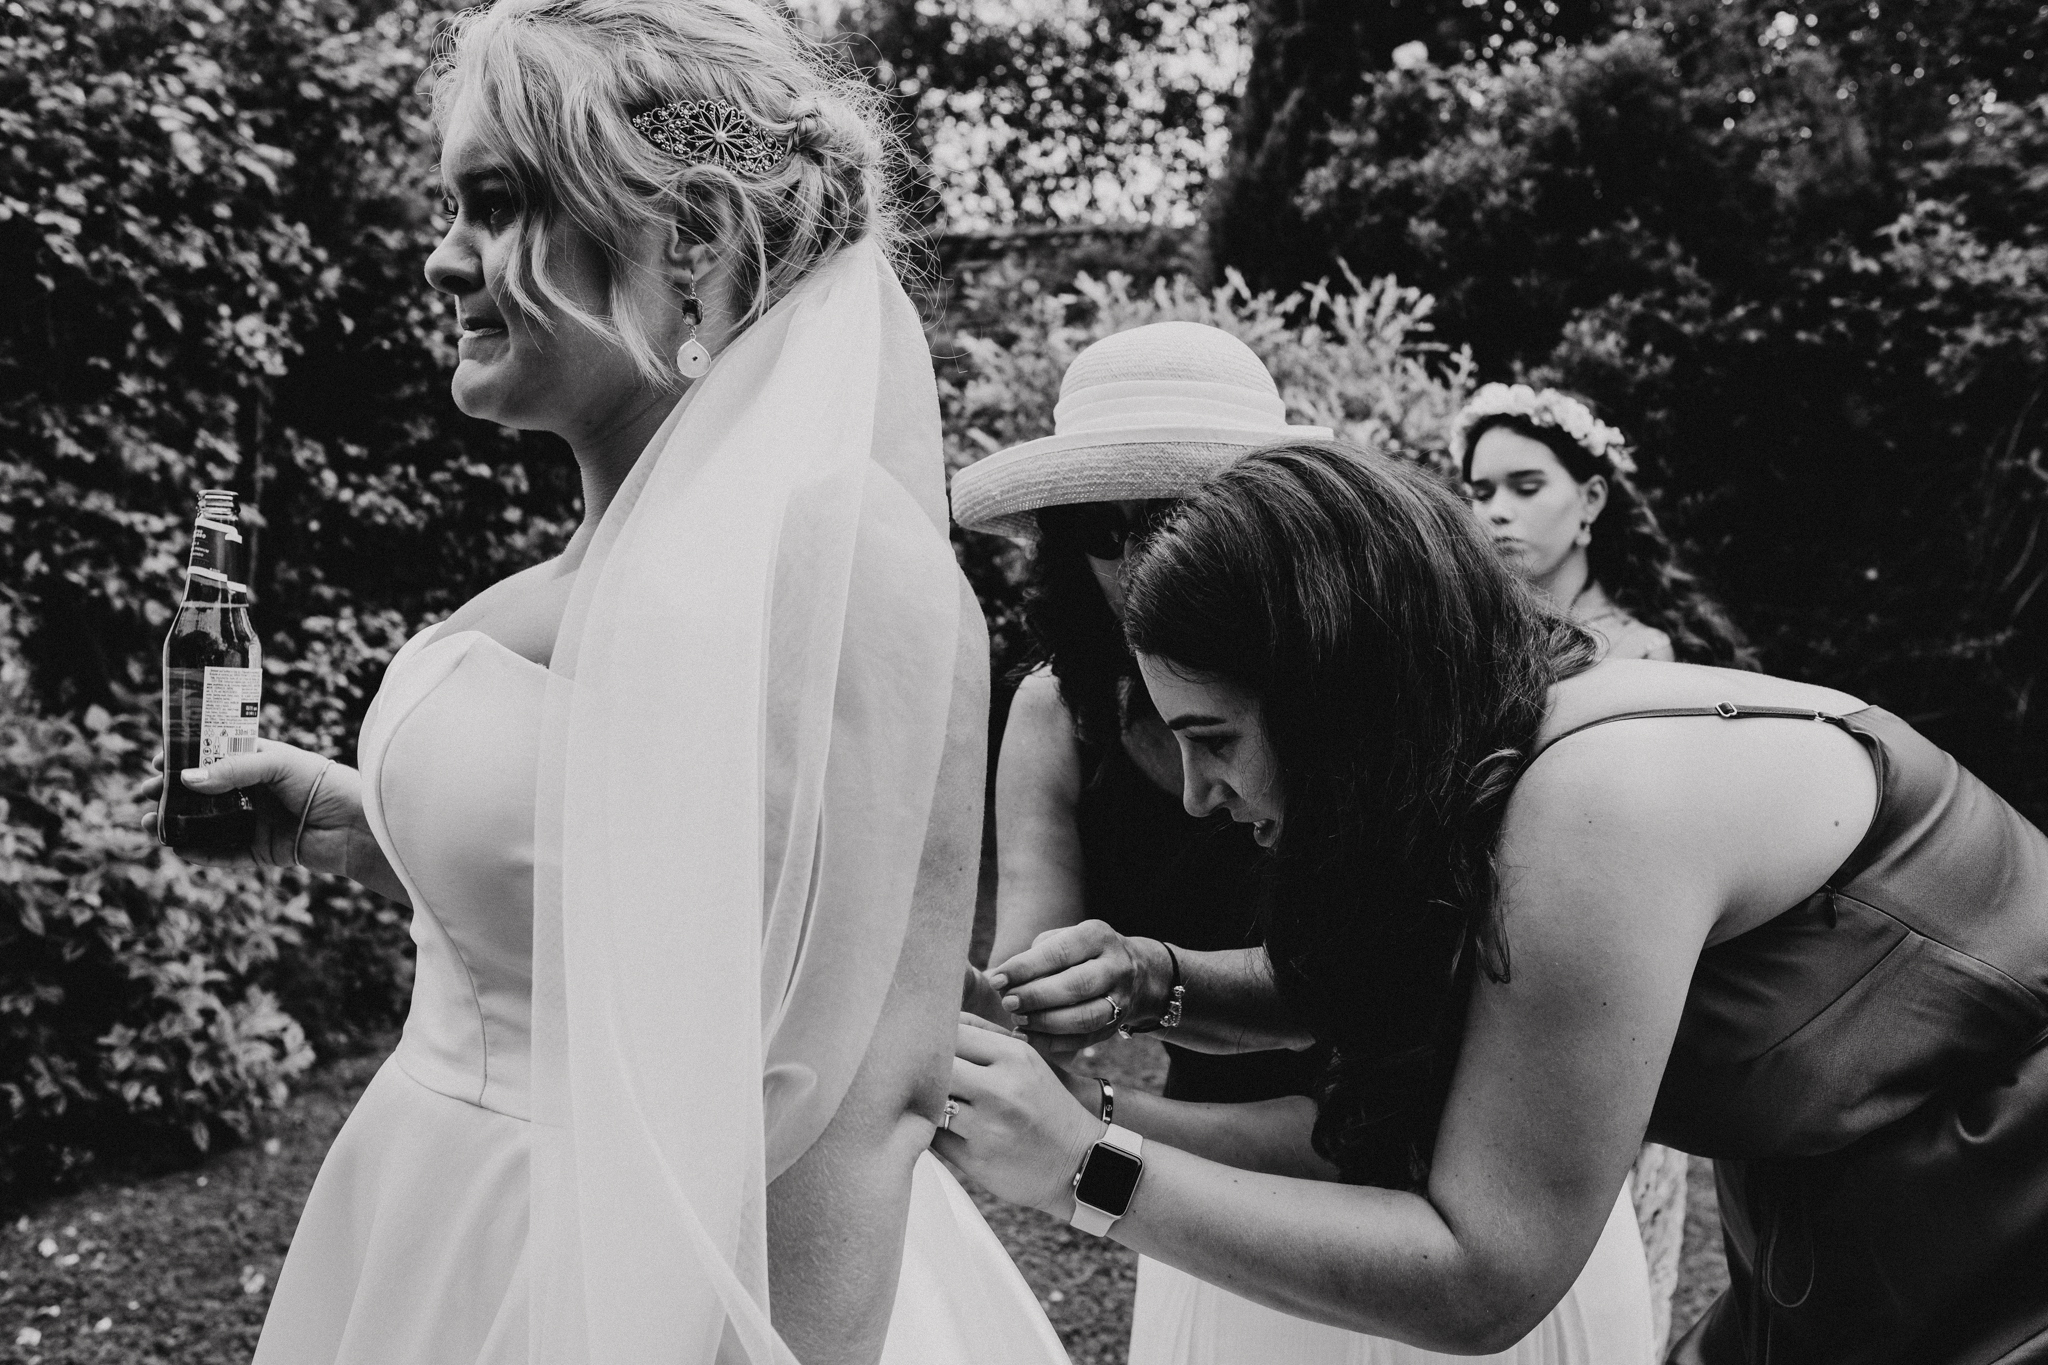 Bride drinks beer as bridesmaids sort out her wedding dress